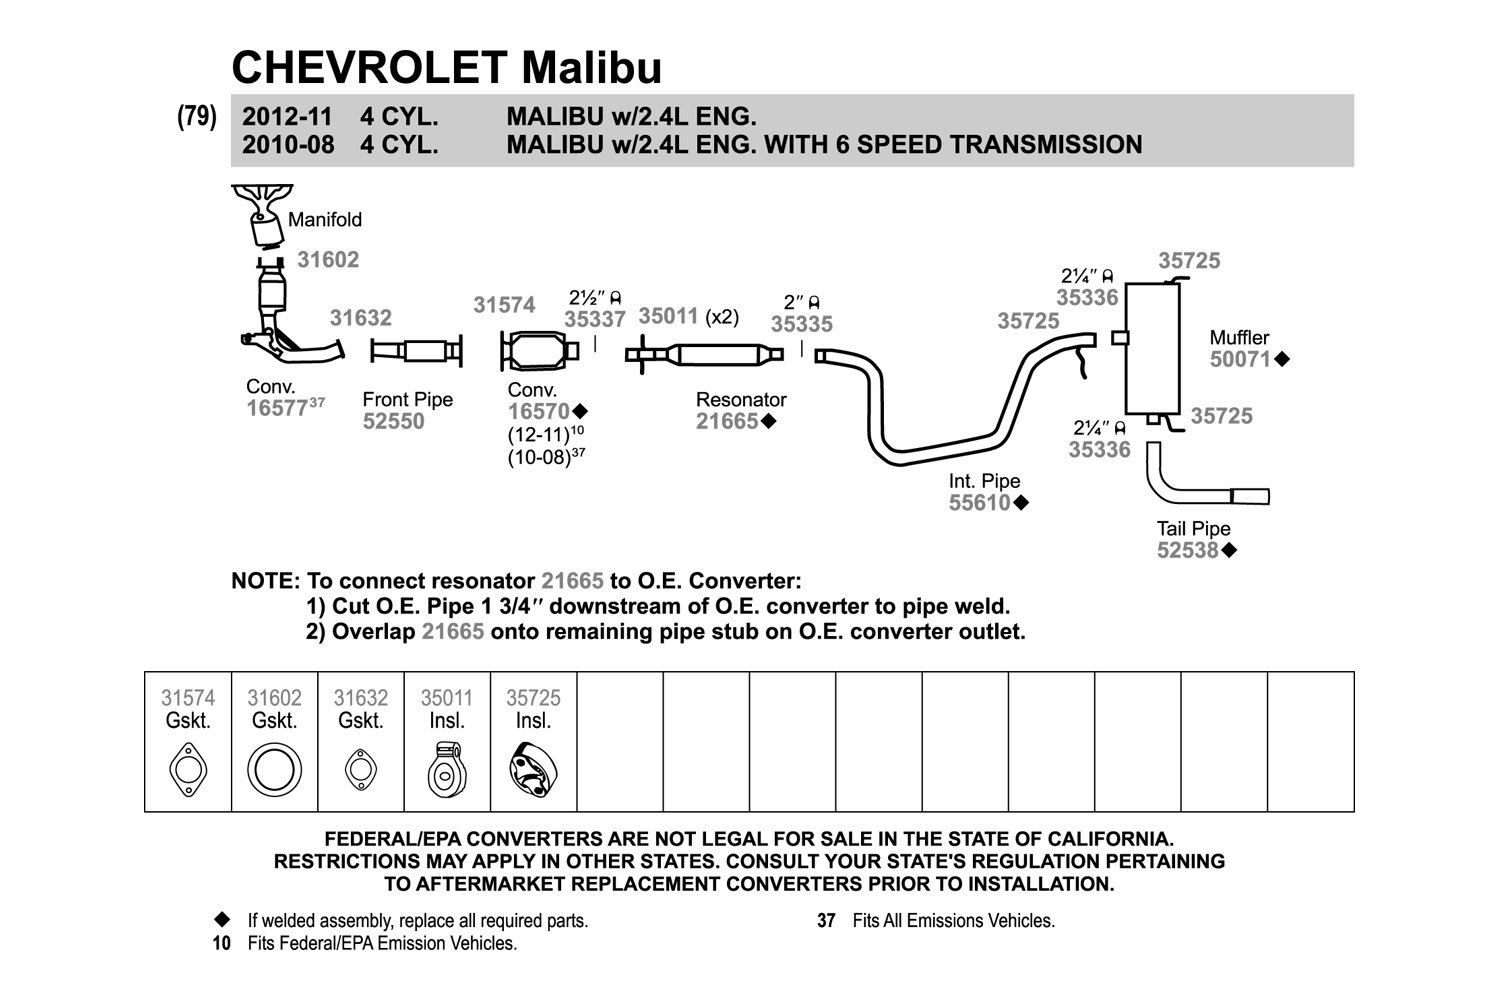 2004 Chevy Malibu Exhaust System Diagram